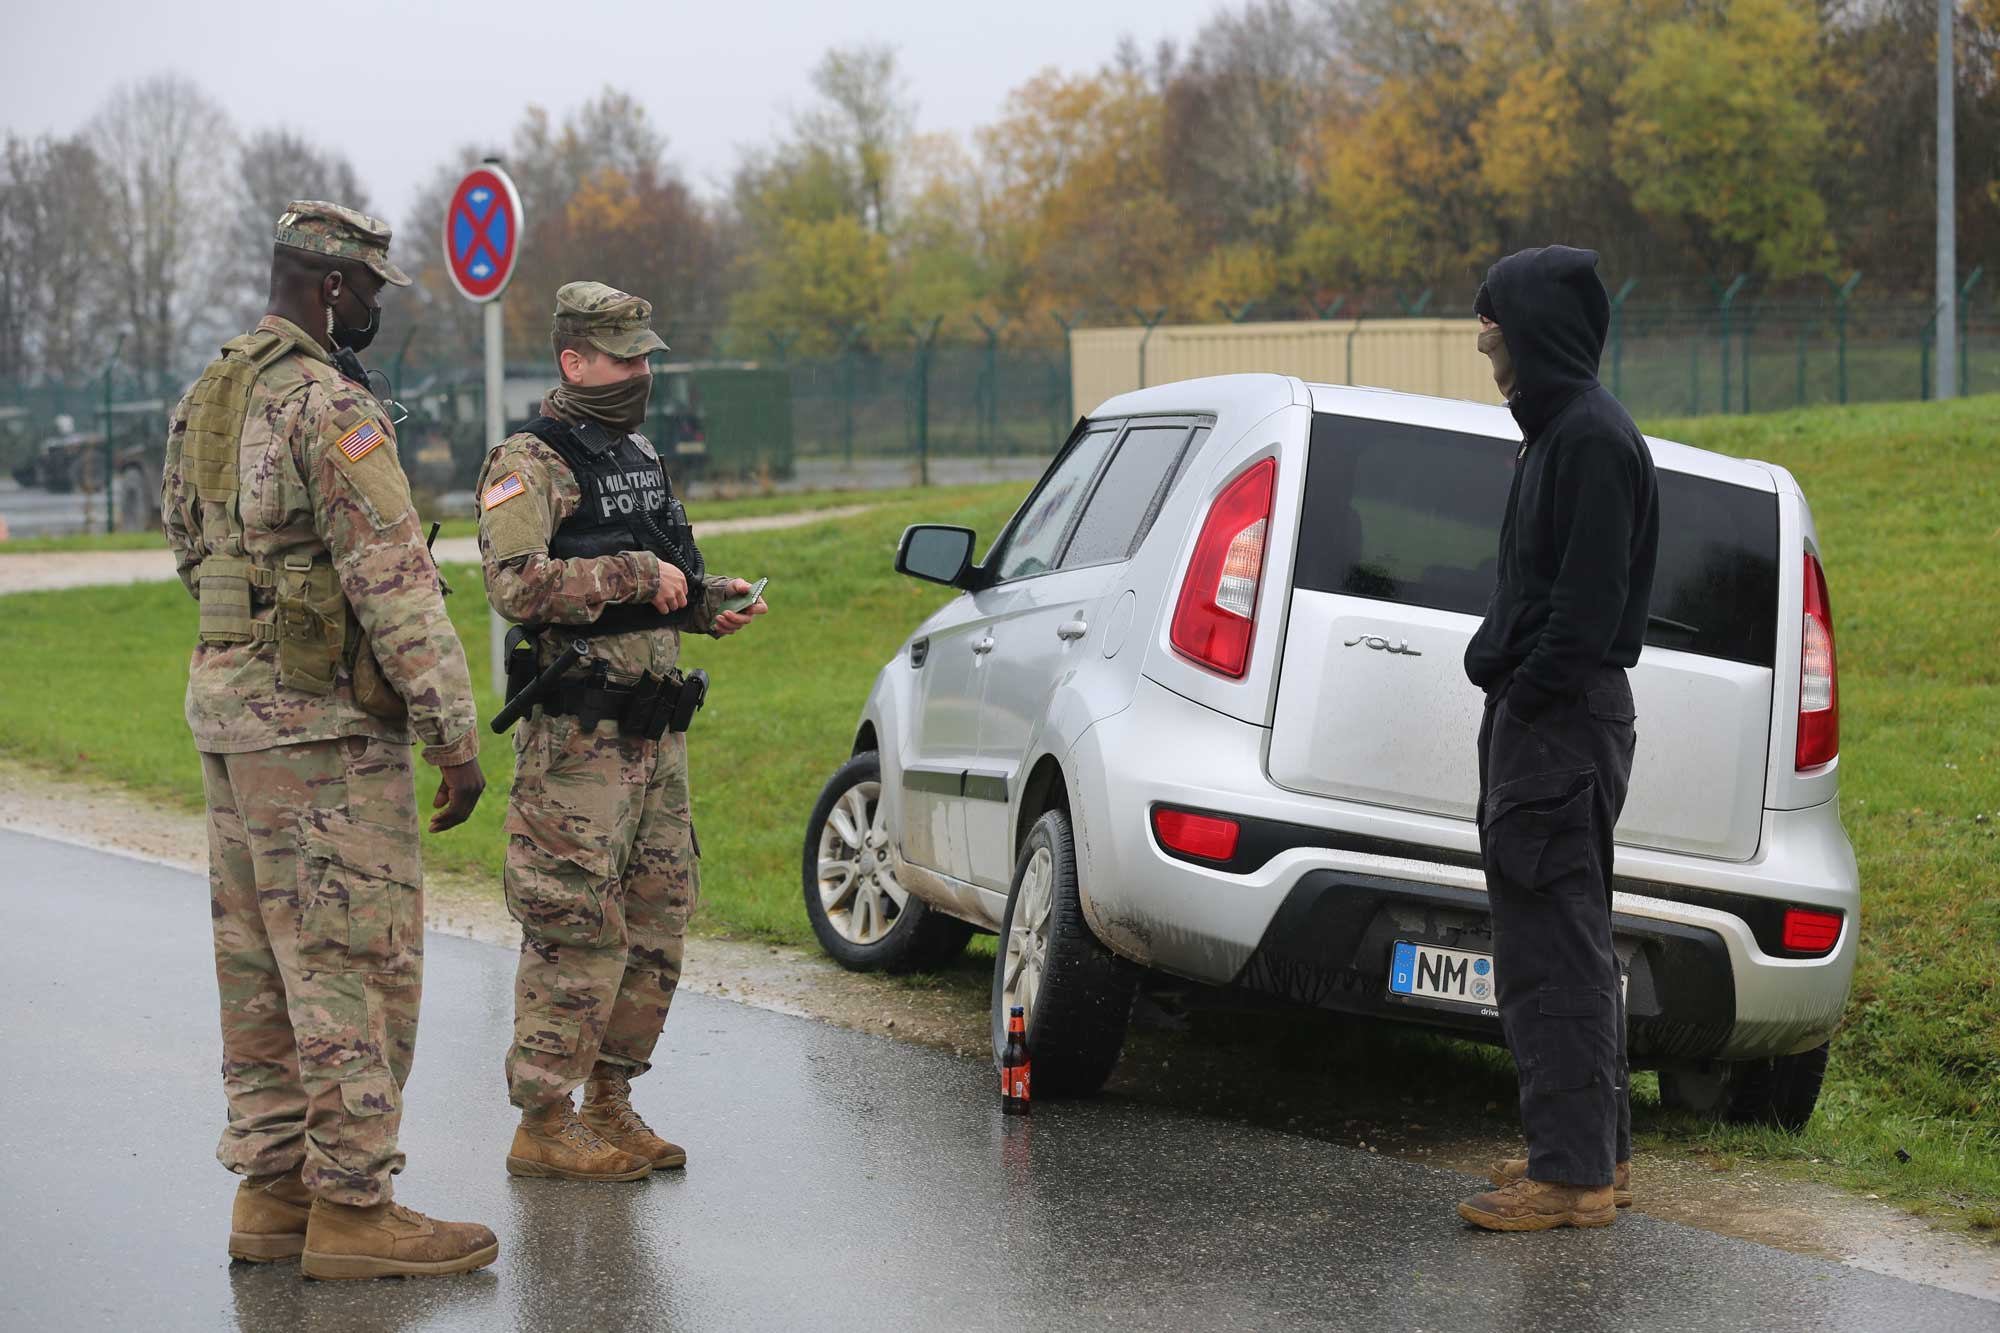 U.S. Army Soldiers assigned to the 29th Military Police detachment conduct DUI stop training at Hohenfels, Germany, Nov. 1. Photo by Pvt. Jordan Humphries, courtesy of the U.S. Army.